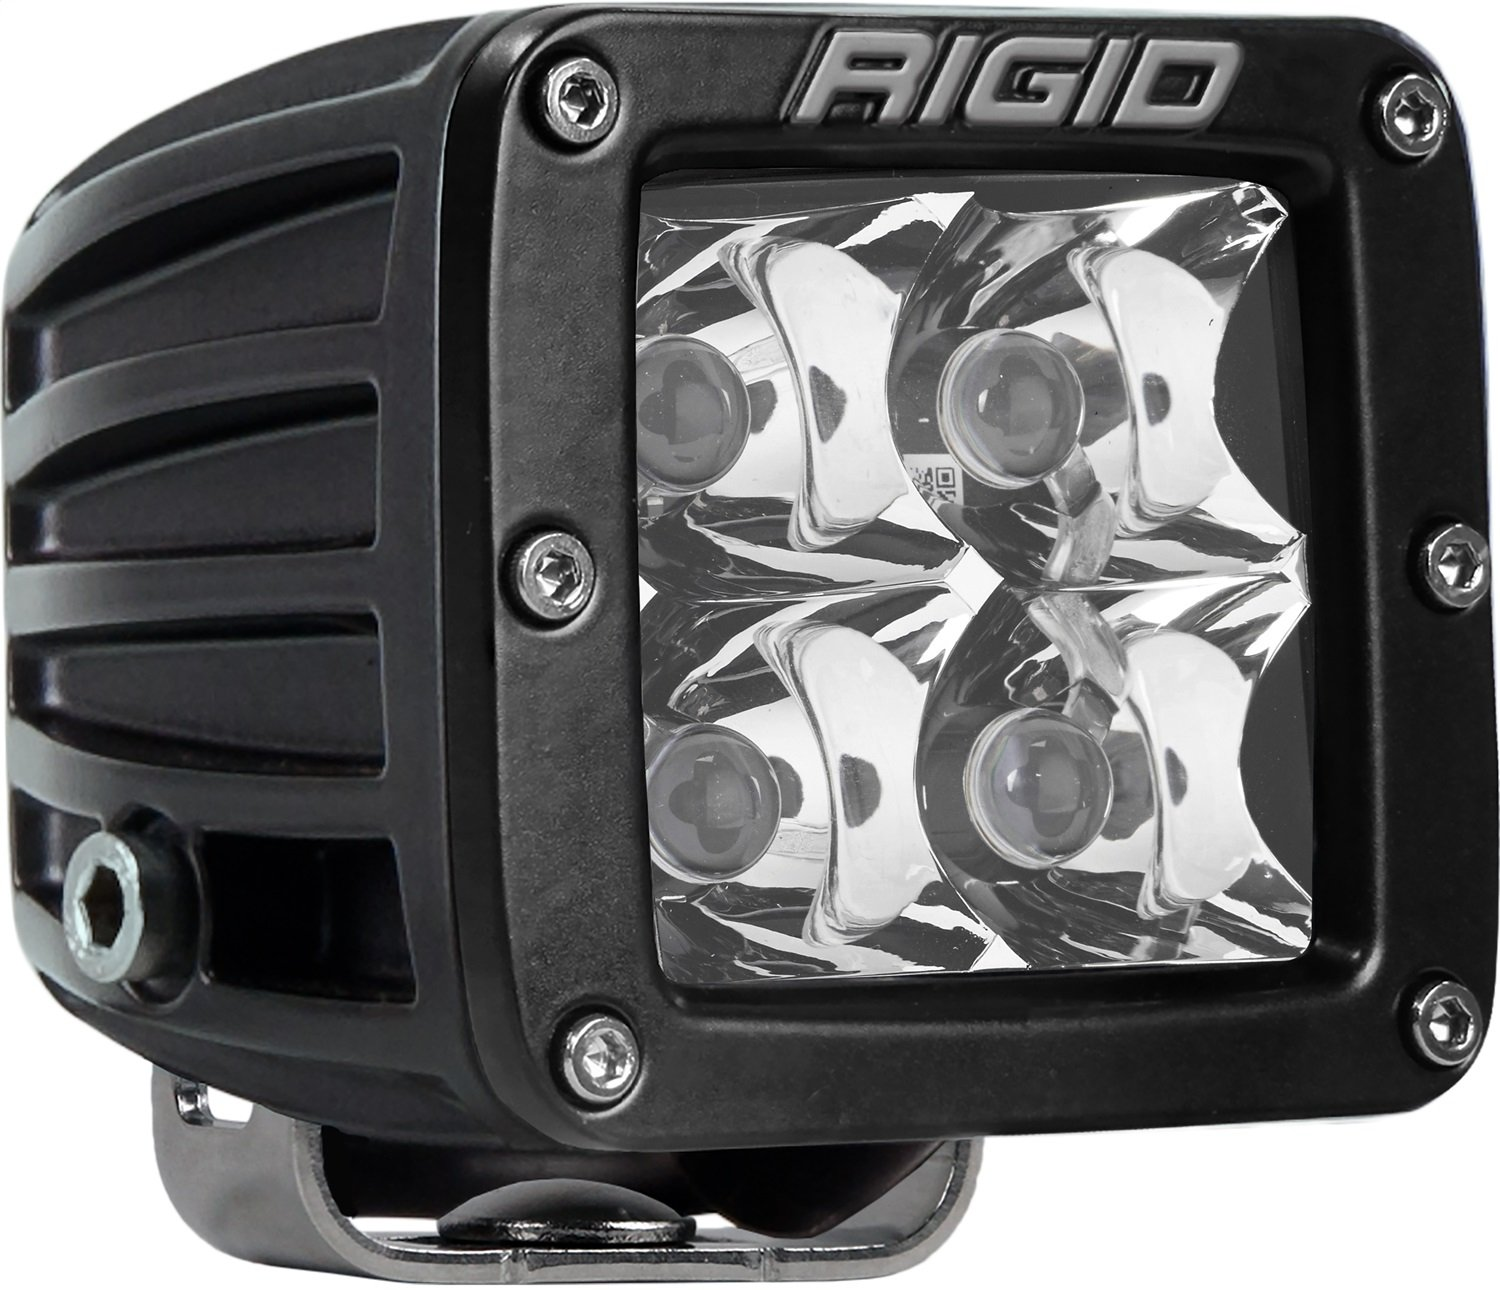 Rigid Industries 201213 D-Series Pro Spot Light; Surface Mount; Hybrid; 4 White LEDs; Black Square Housing; Single; by Rigid Industries